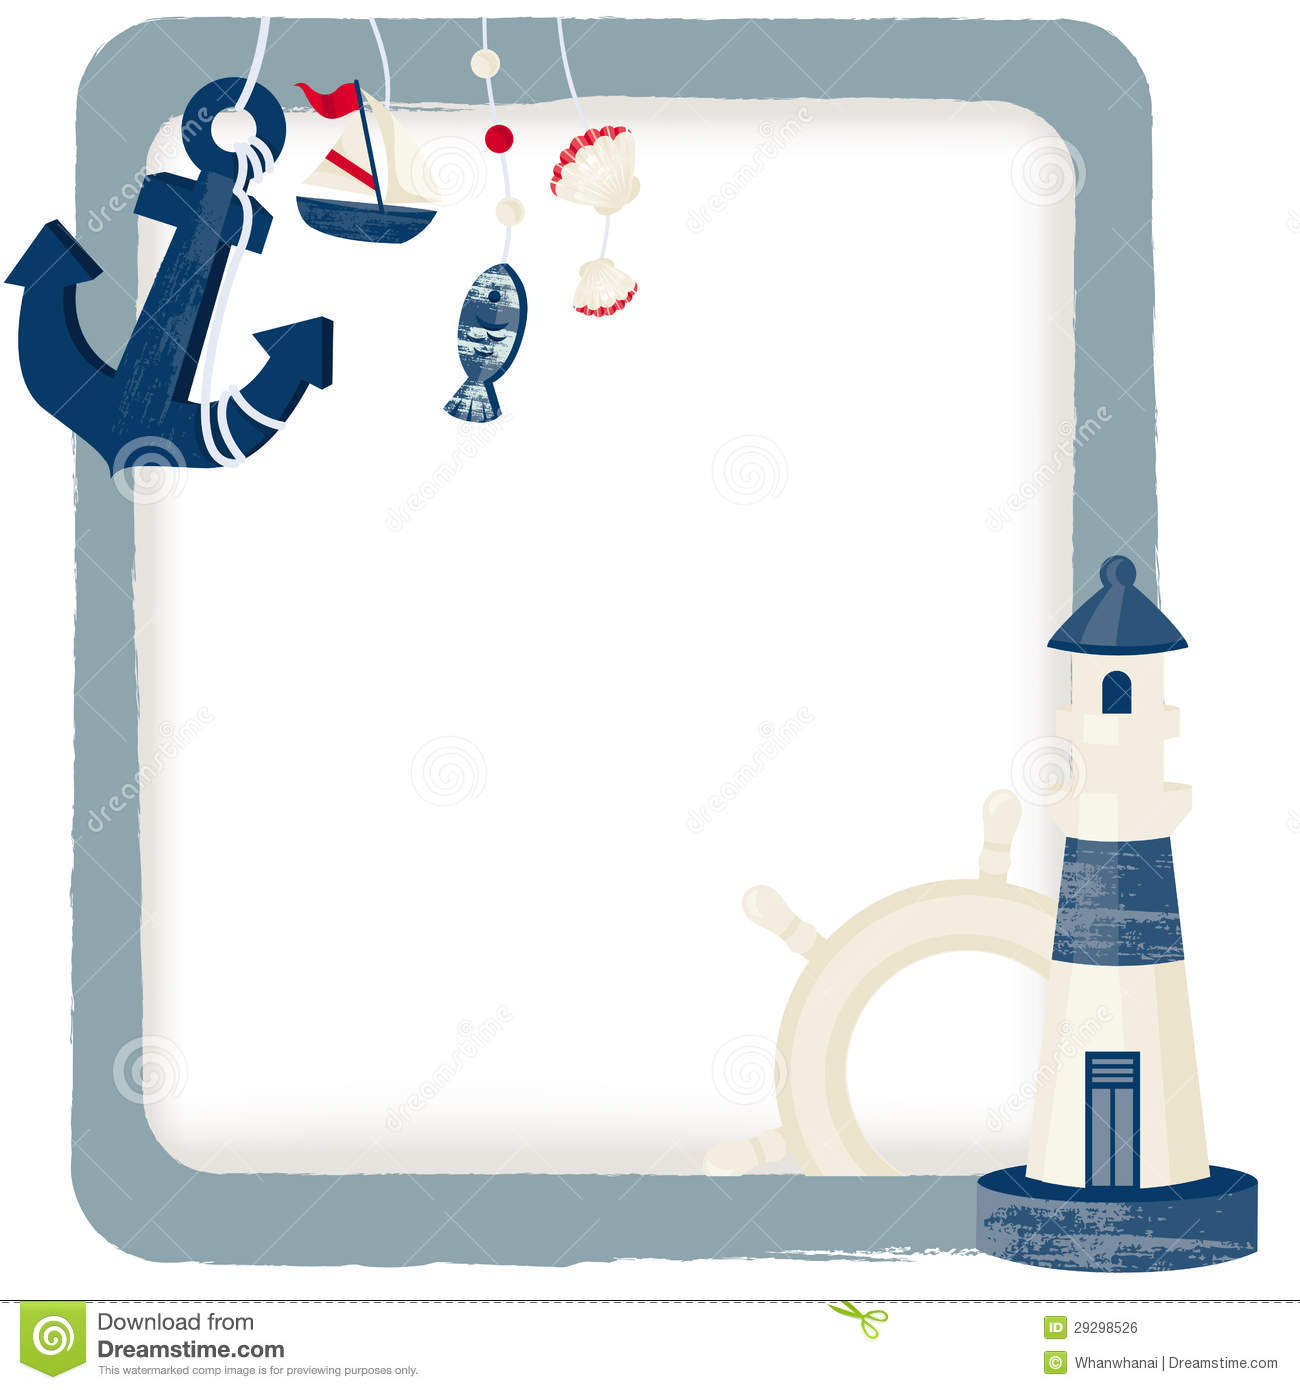 Nautical Background Royalty Free Stock Image - Image: 29298526: www.dreamstime.com/royalty-free-stock-image-nautical-background...